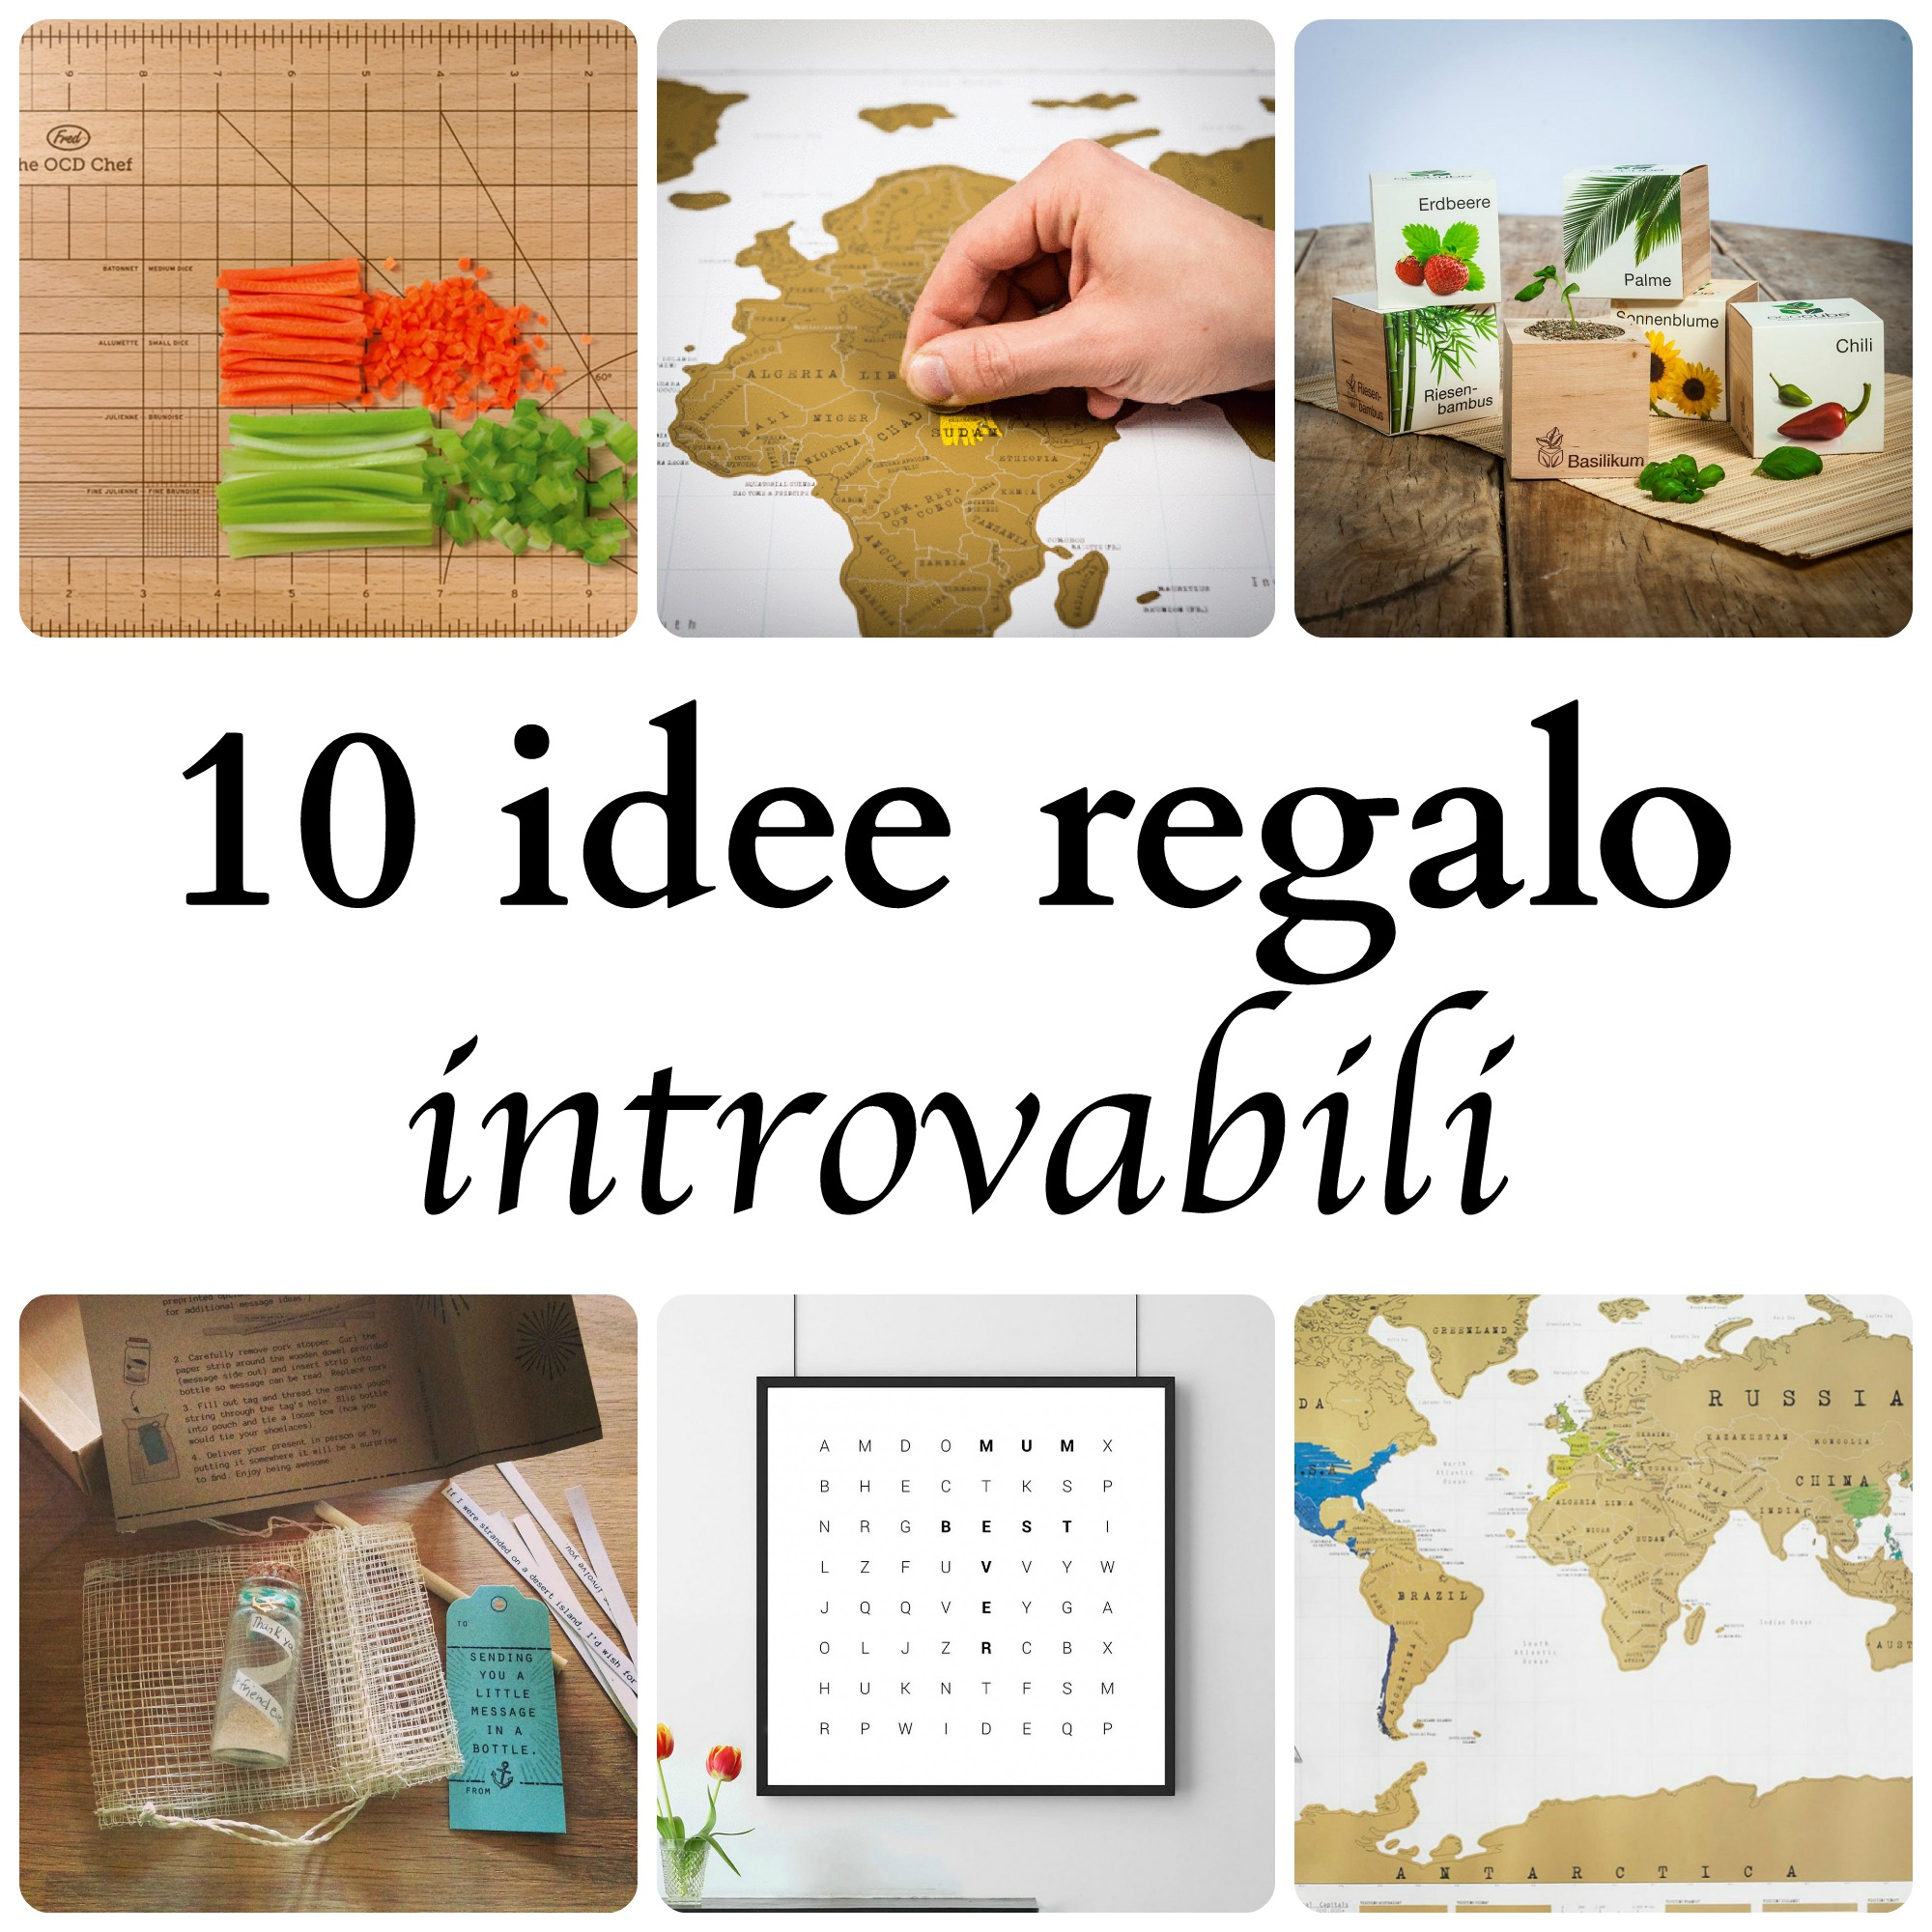 10 idee regalo introvabili  BabyGreen